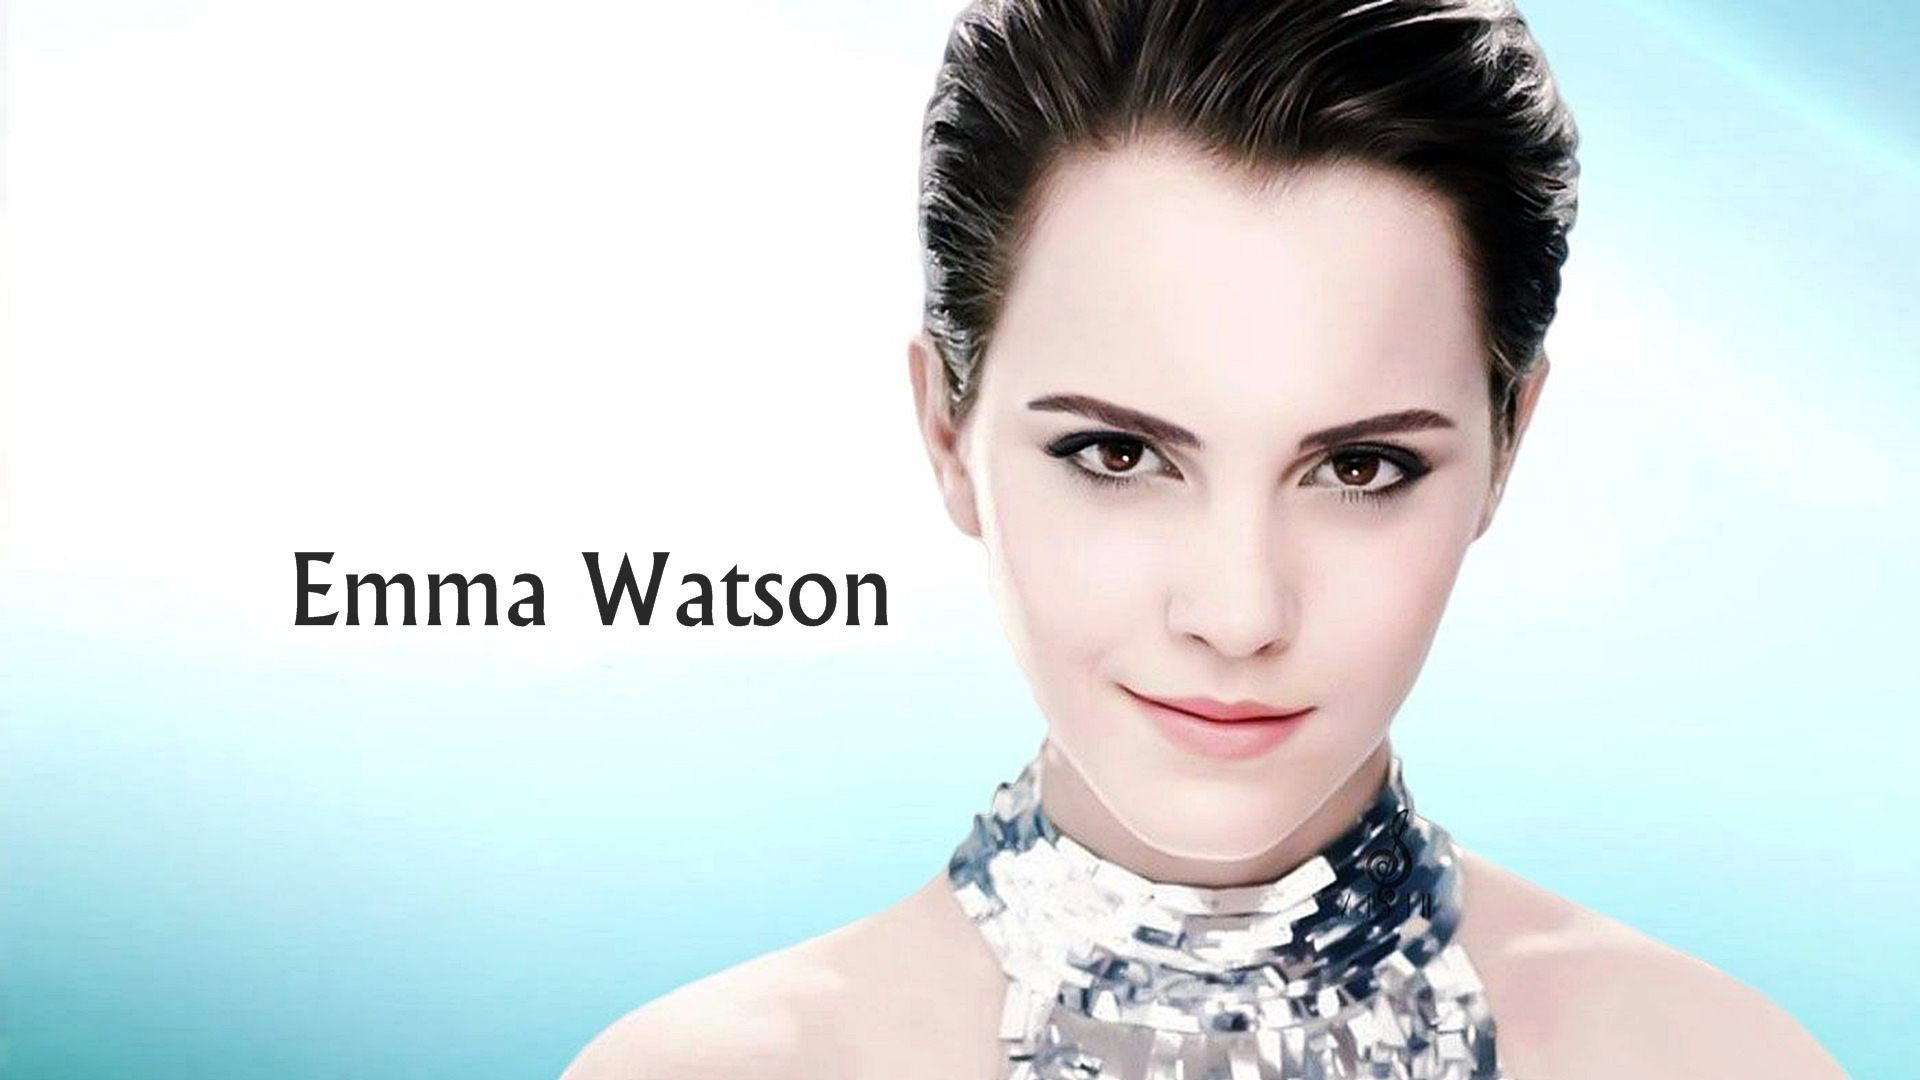 Emma Watson Wallpapers Images Photos Pictures Backgrounds